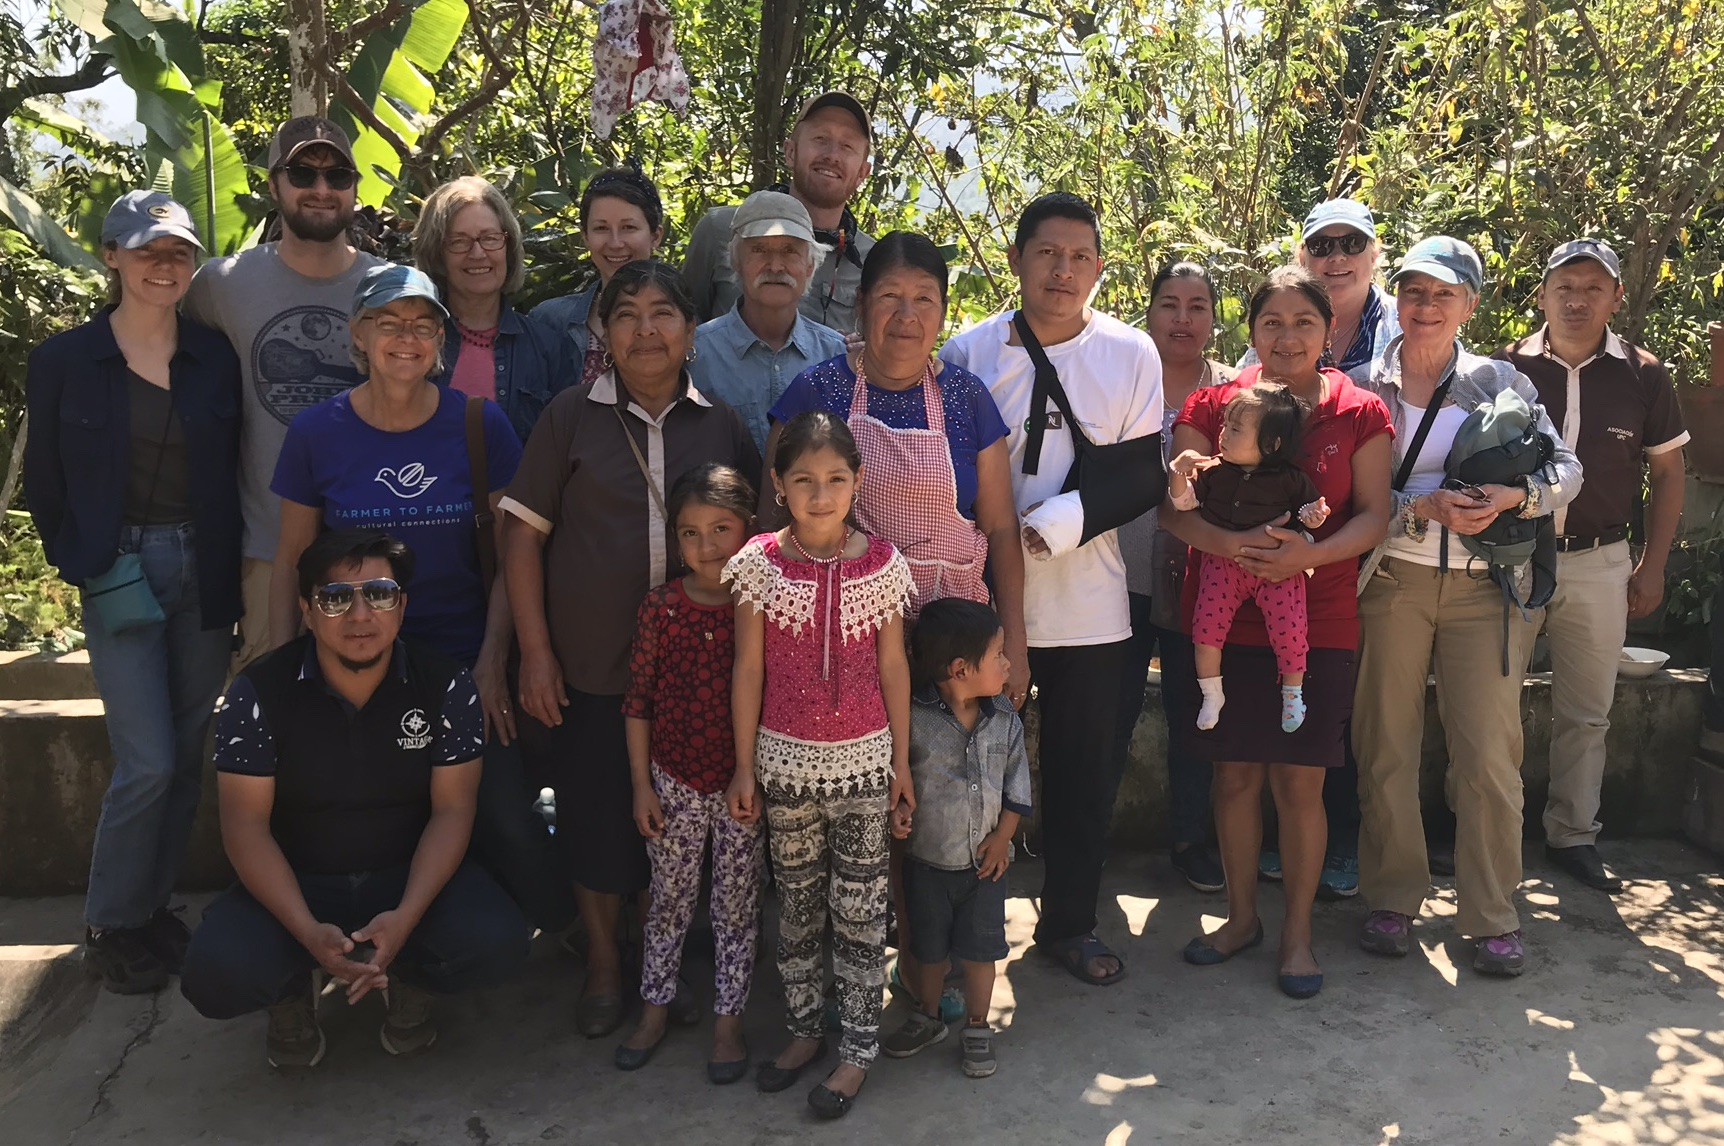 F2F group in Guatemala with coffee farmers and families.